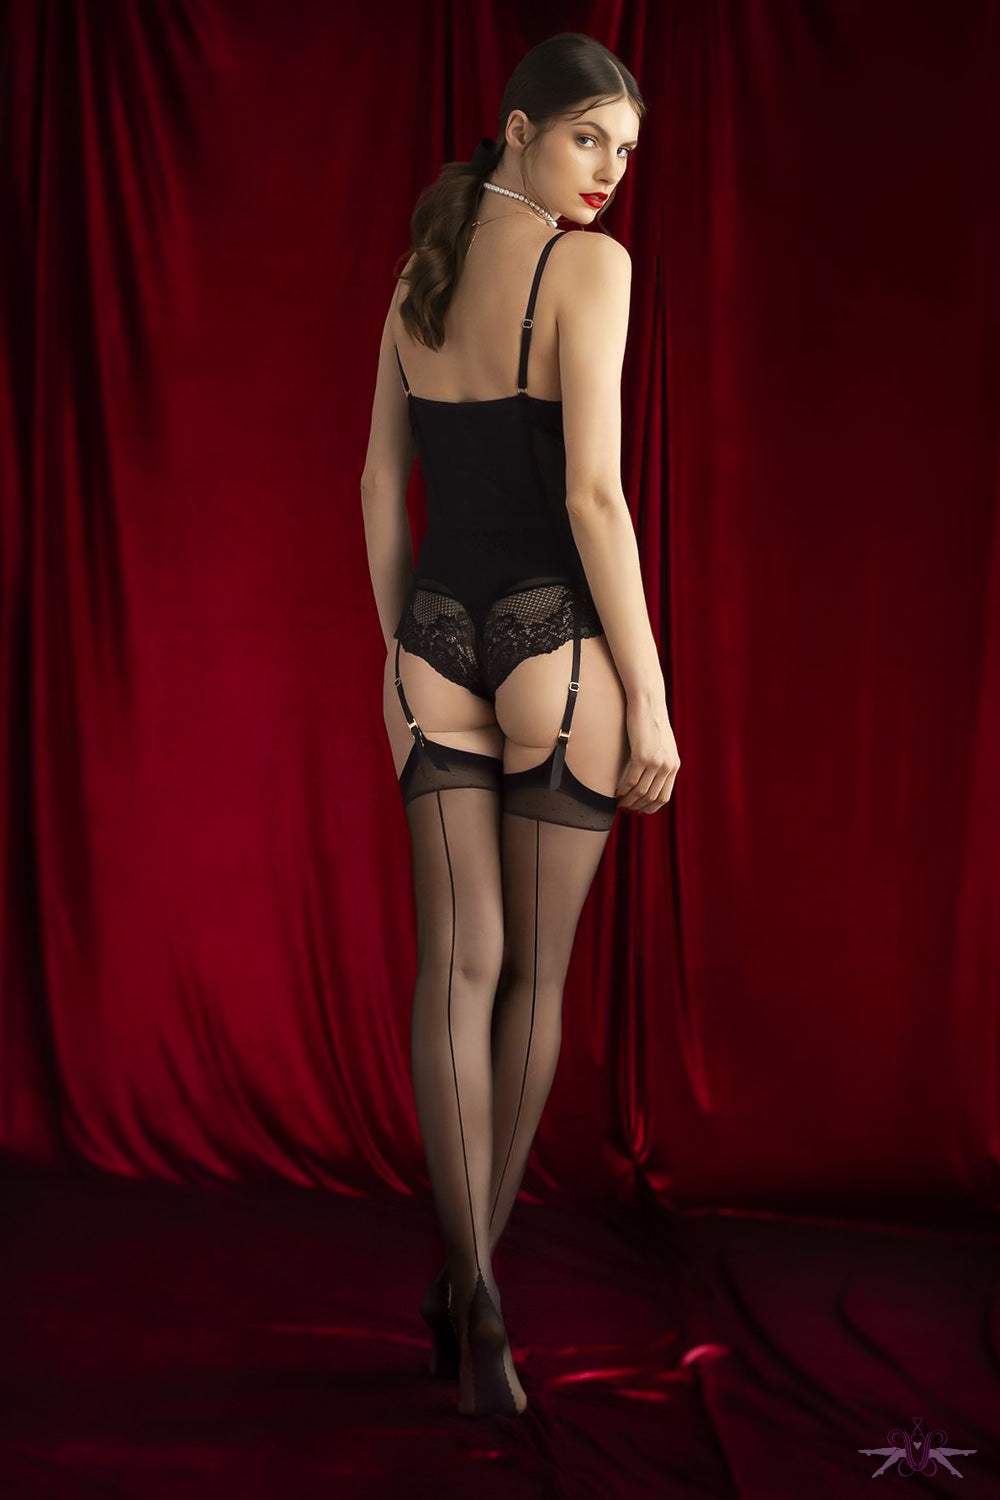 Fiore Sensual Diva Seamed Stockings